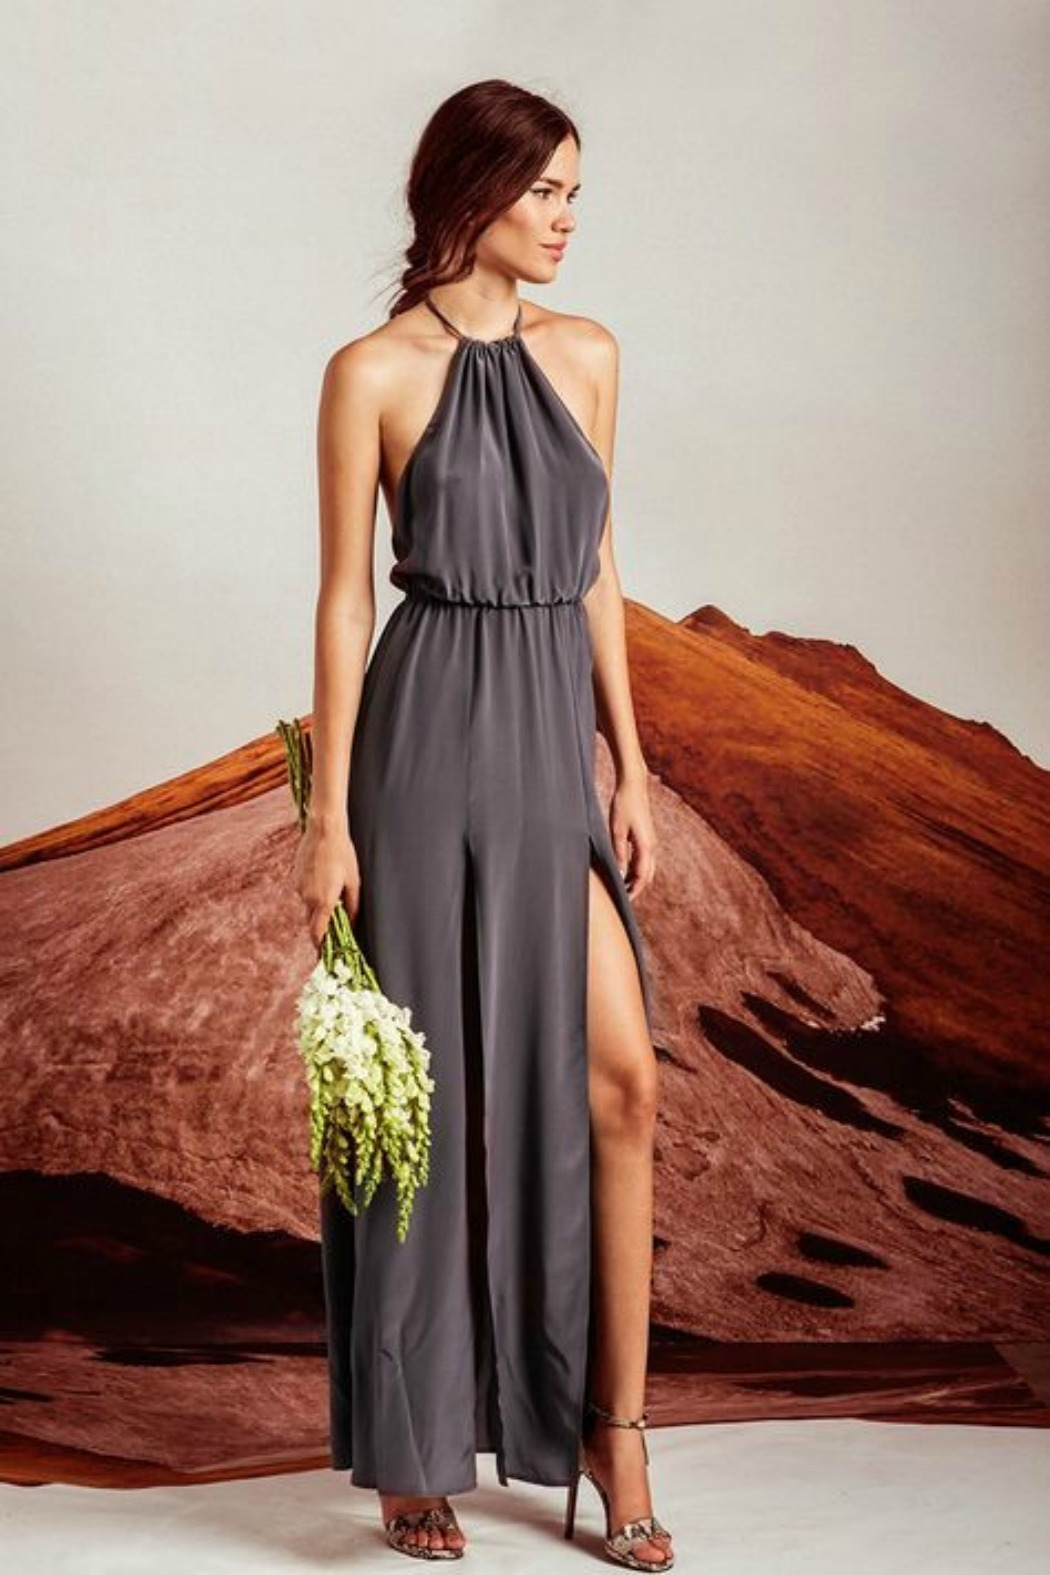 Stone Cold Fox Onyx Gown Dress from California by Brigitte & Stone ...